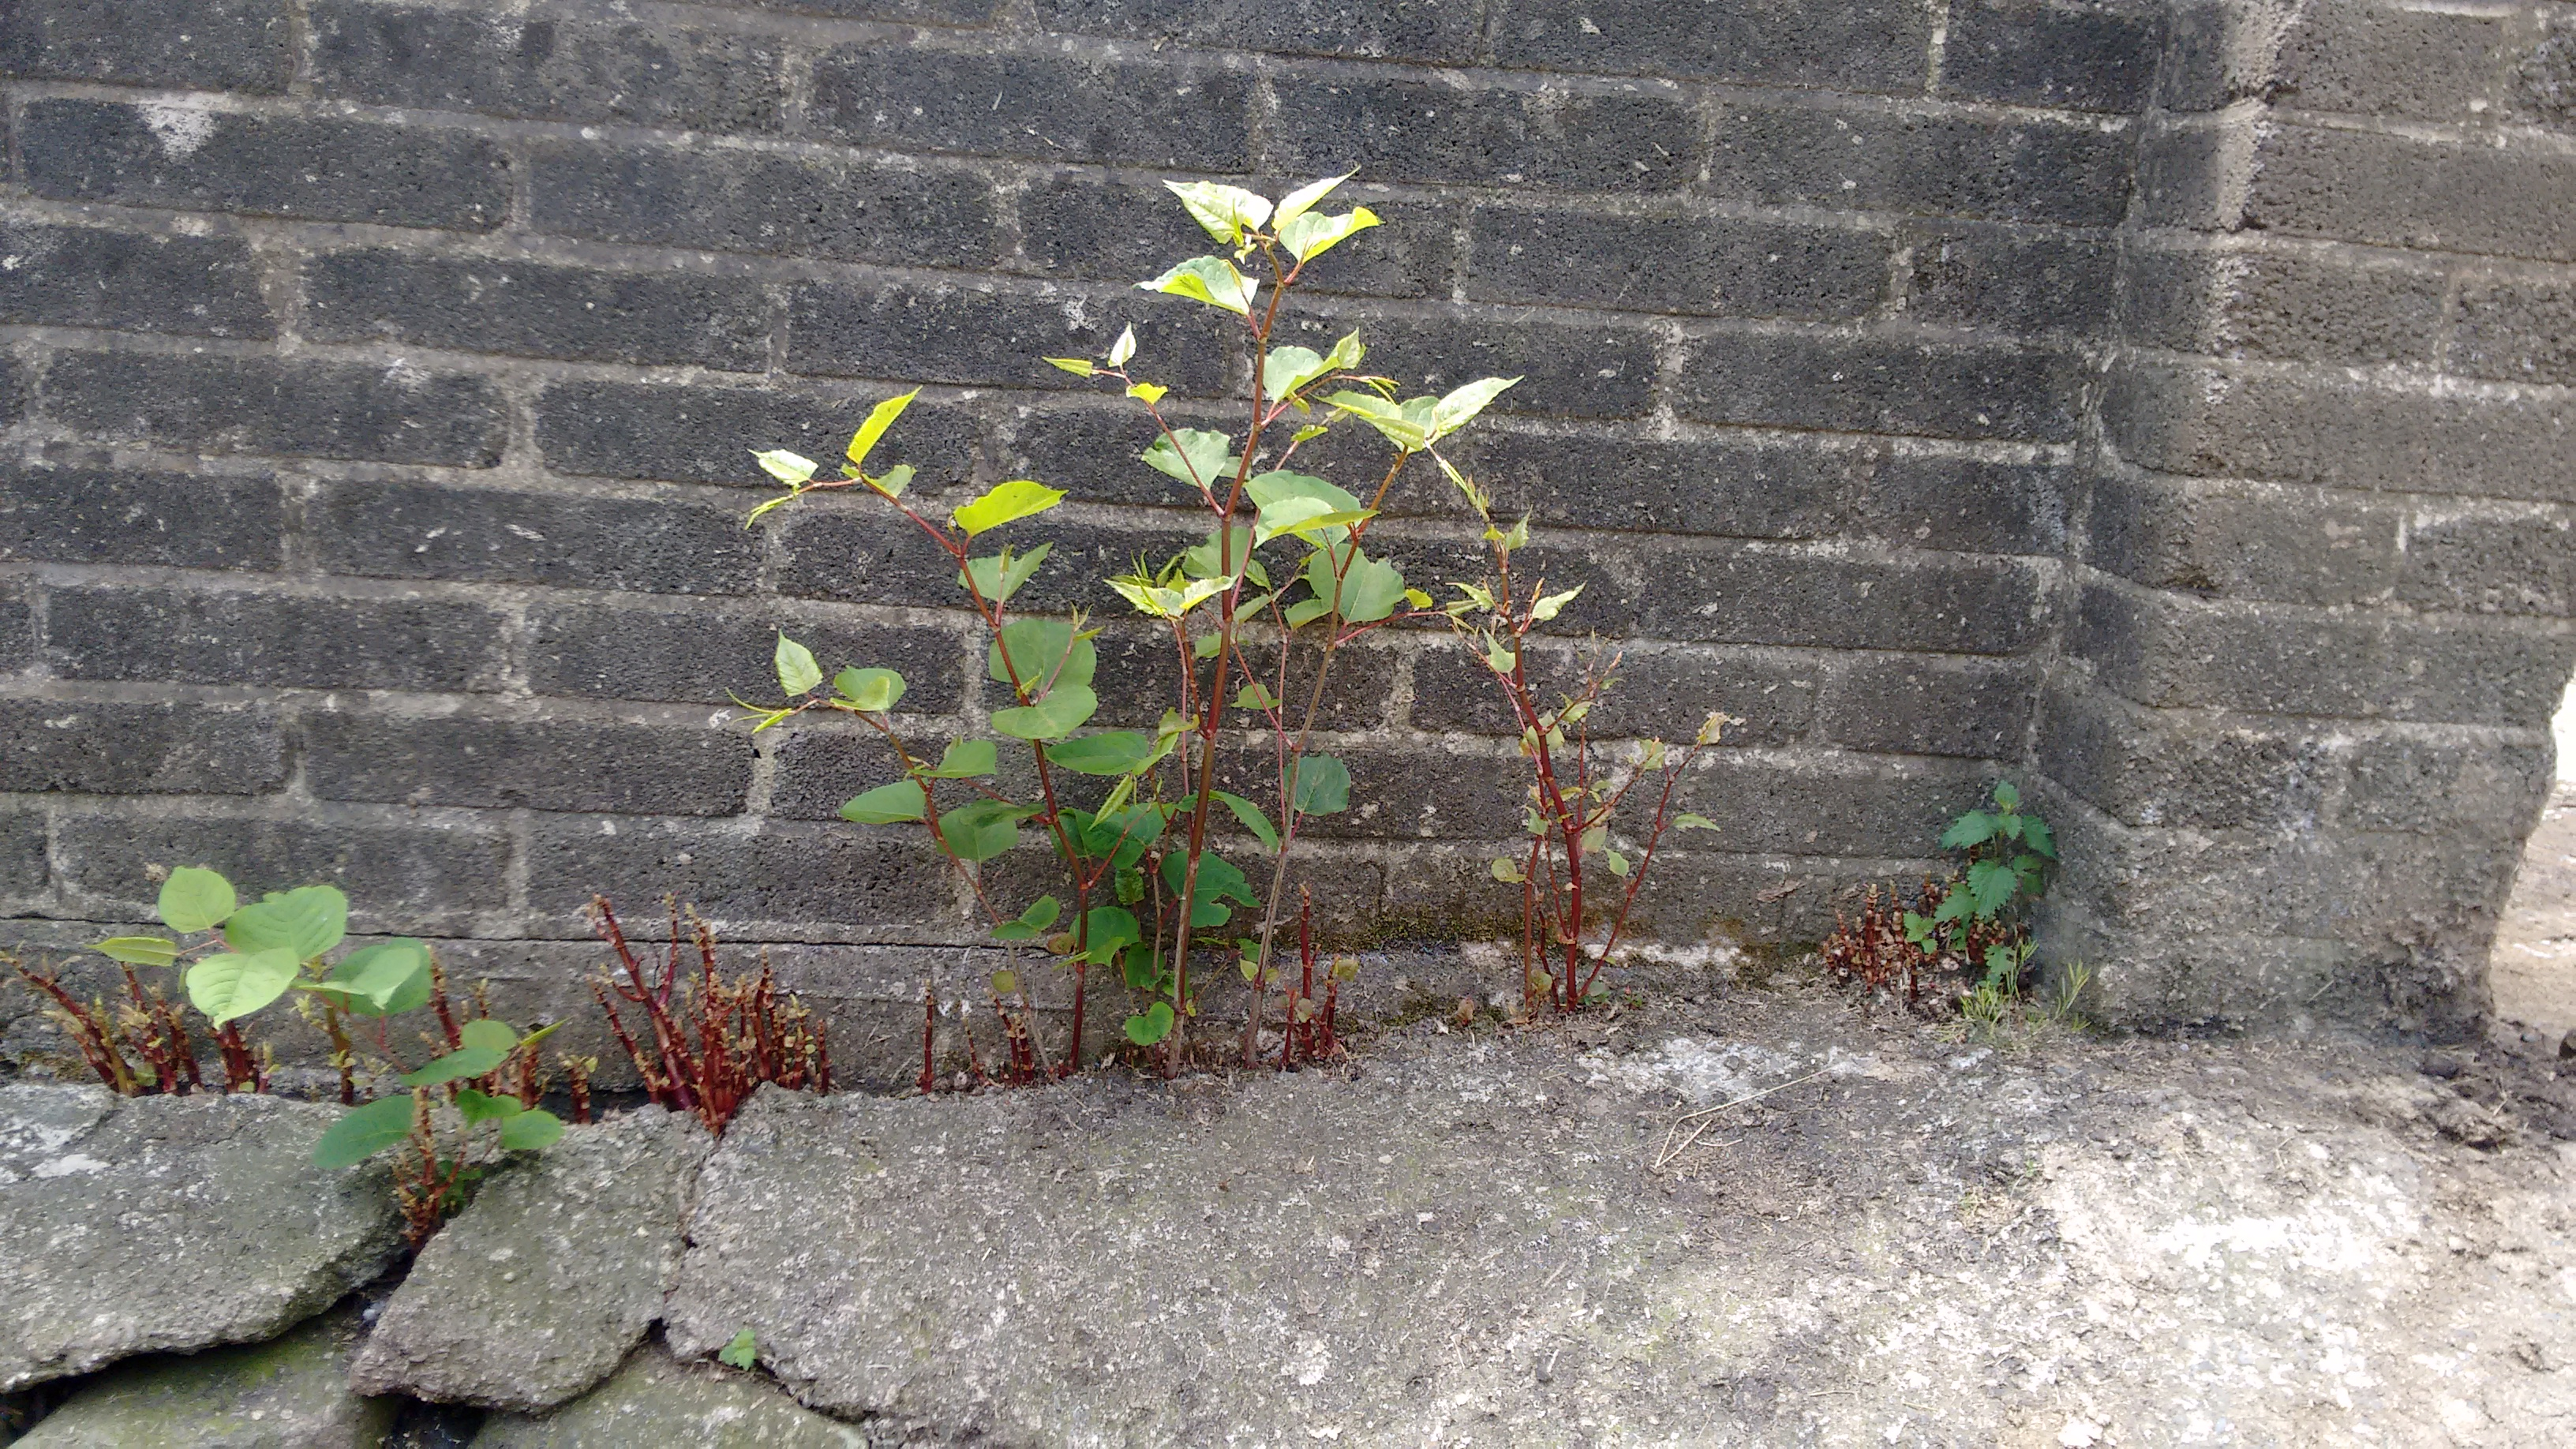 Japanese Knotweed damaging a building